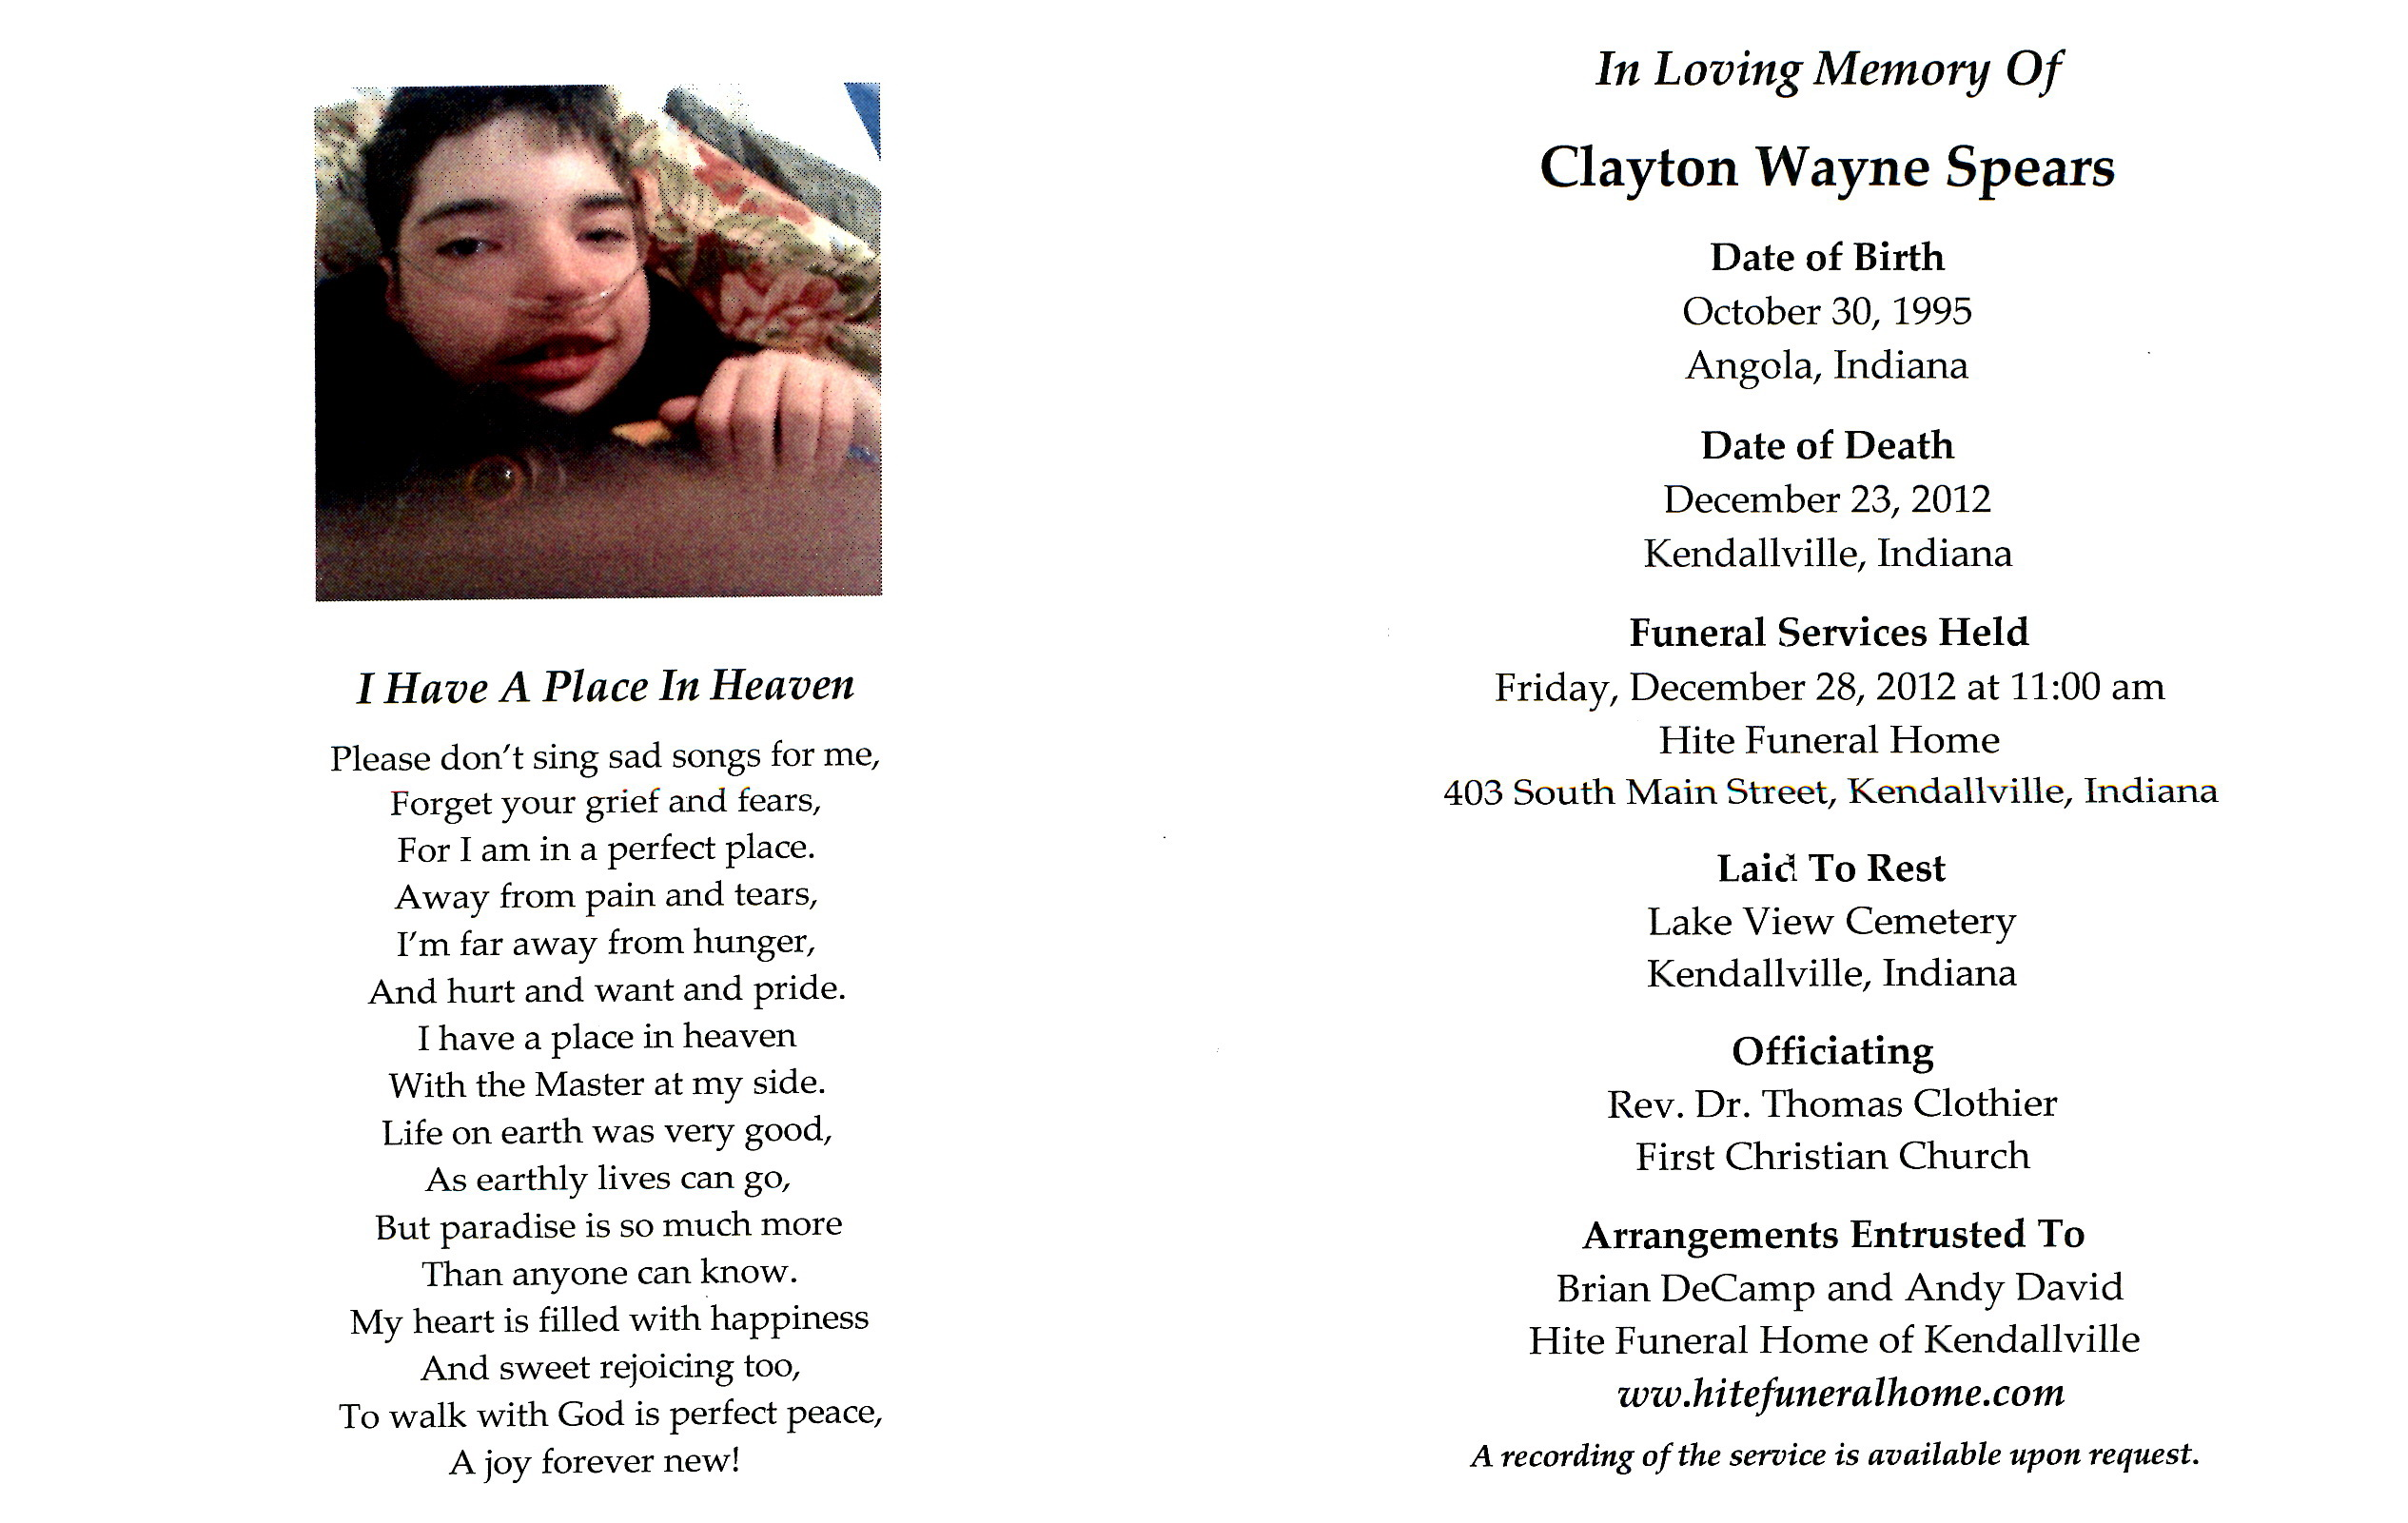 Funeral Homes In Kendallville Indiana Avie Home